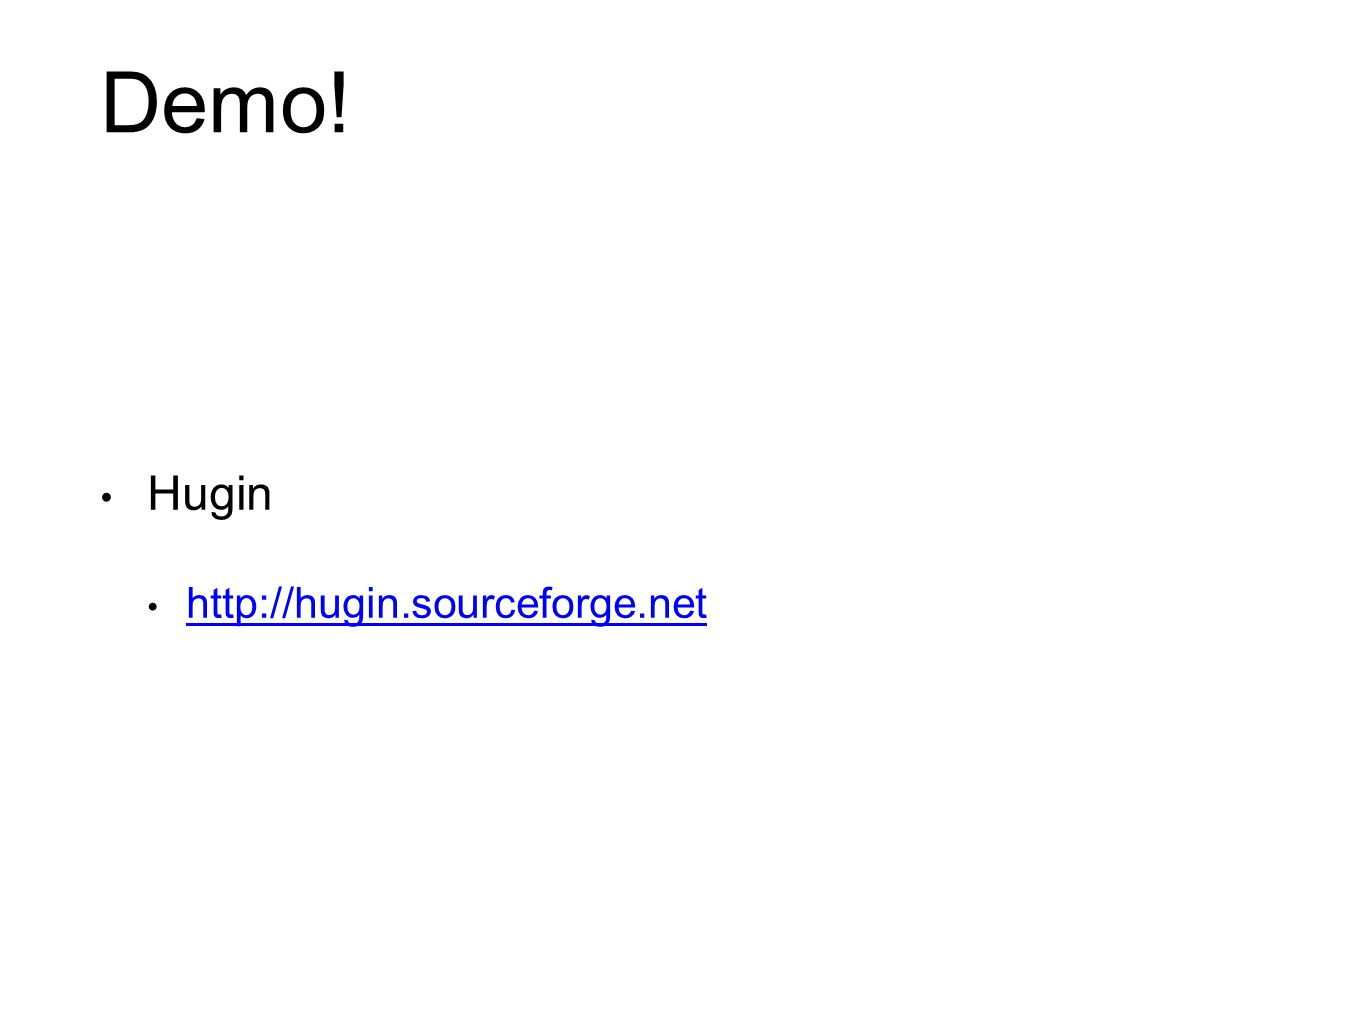 Demo! Hugin http://hugin.sourceforge.net